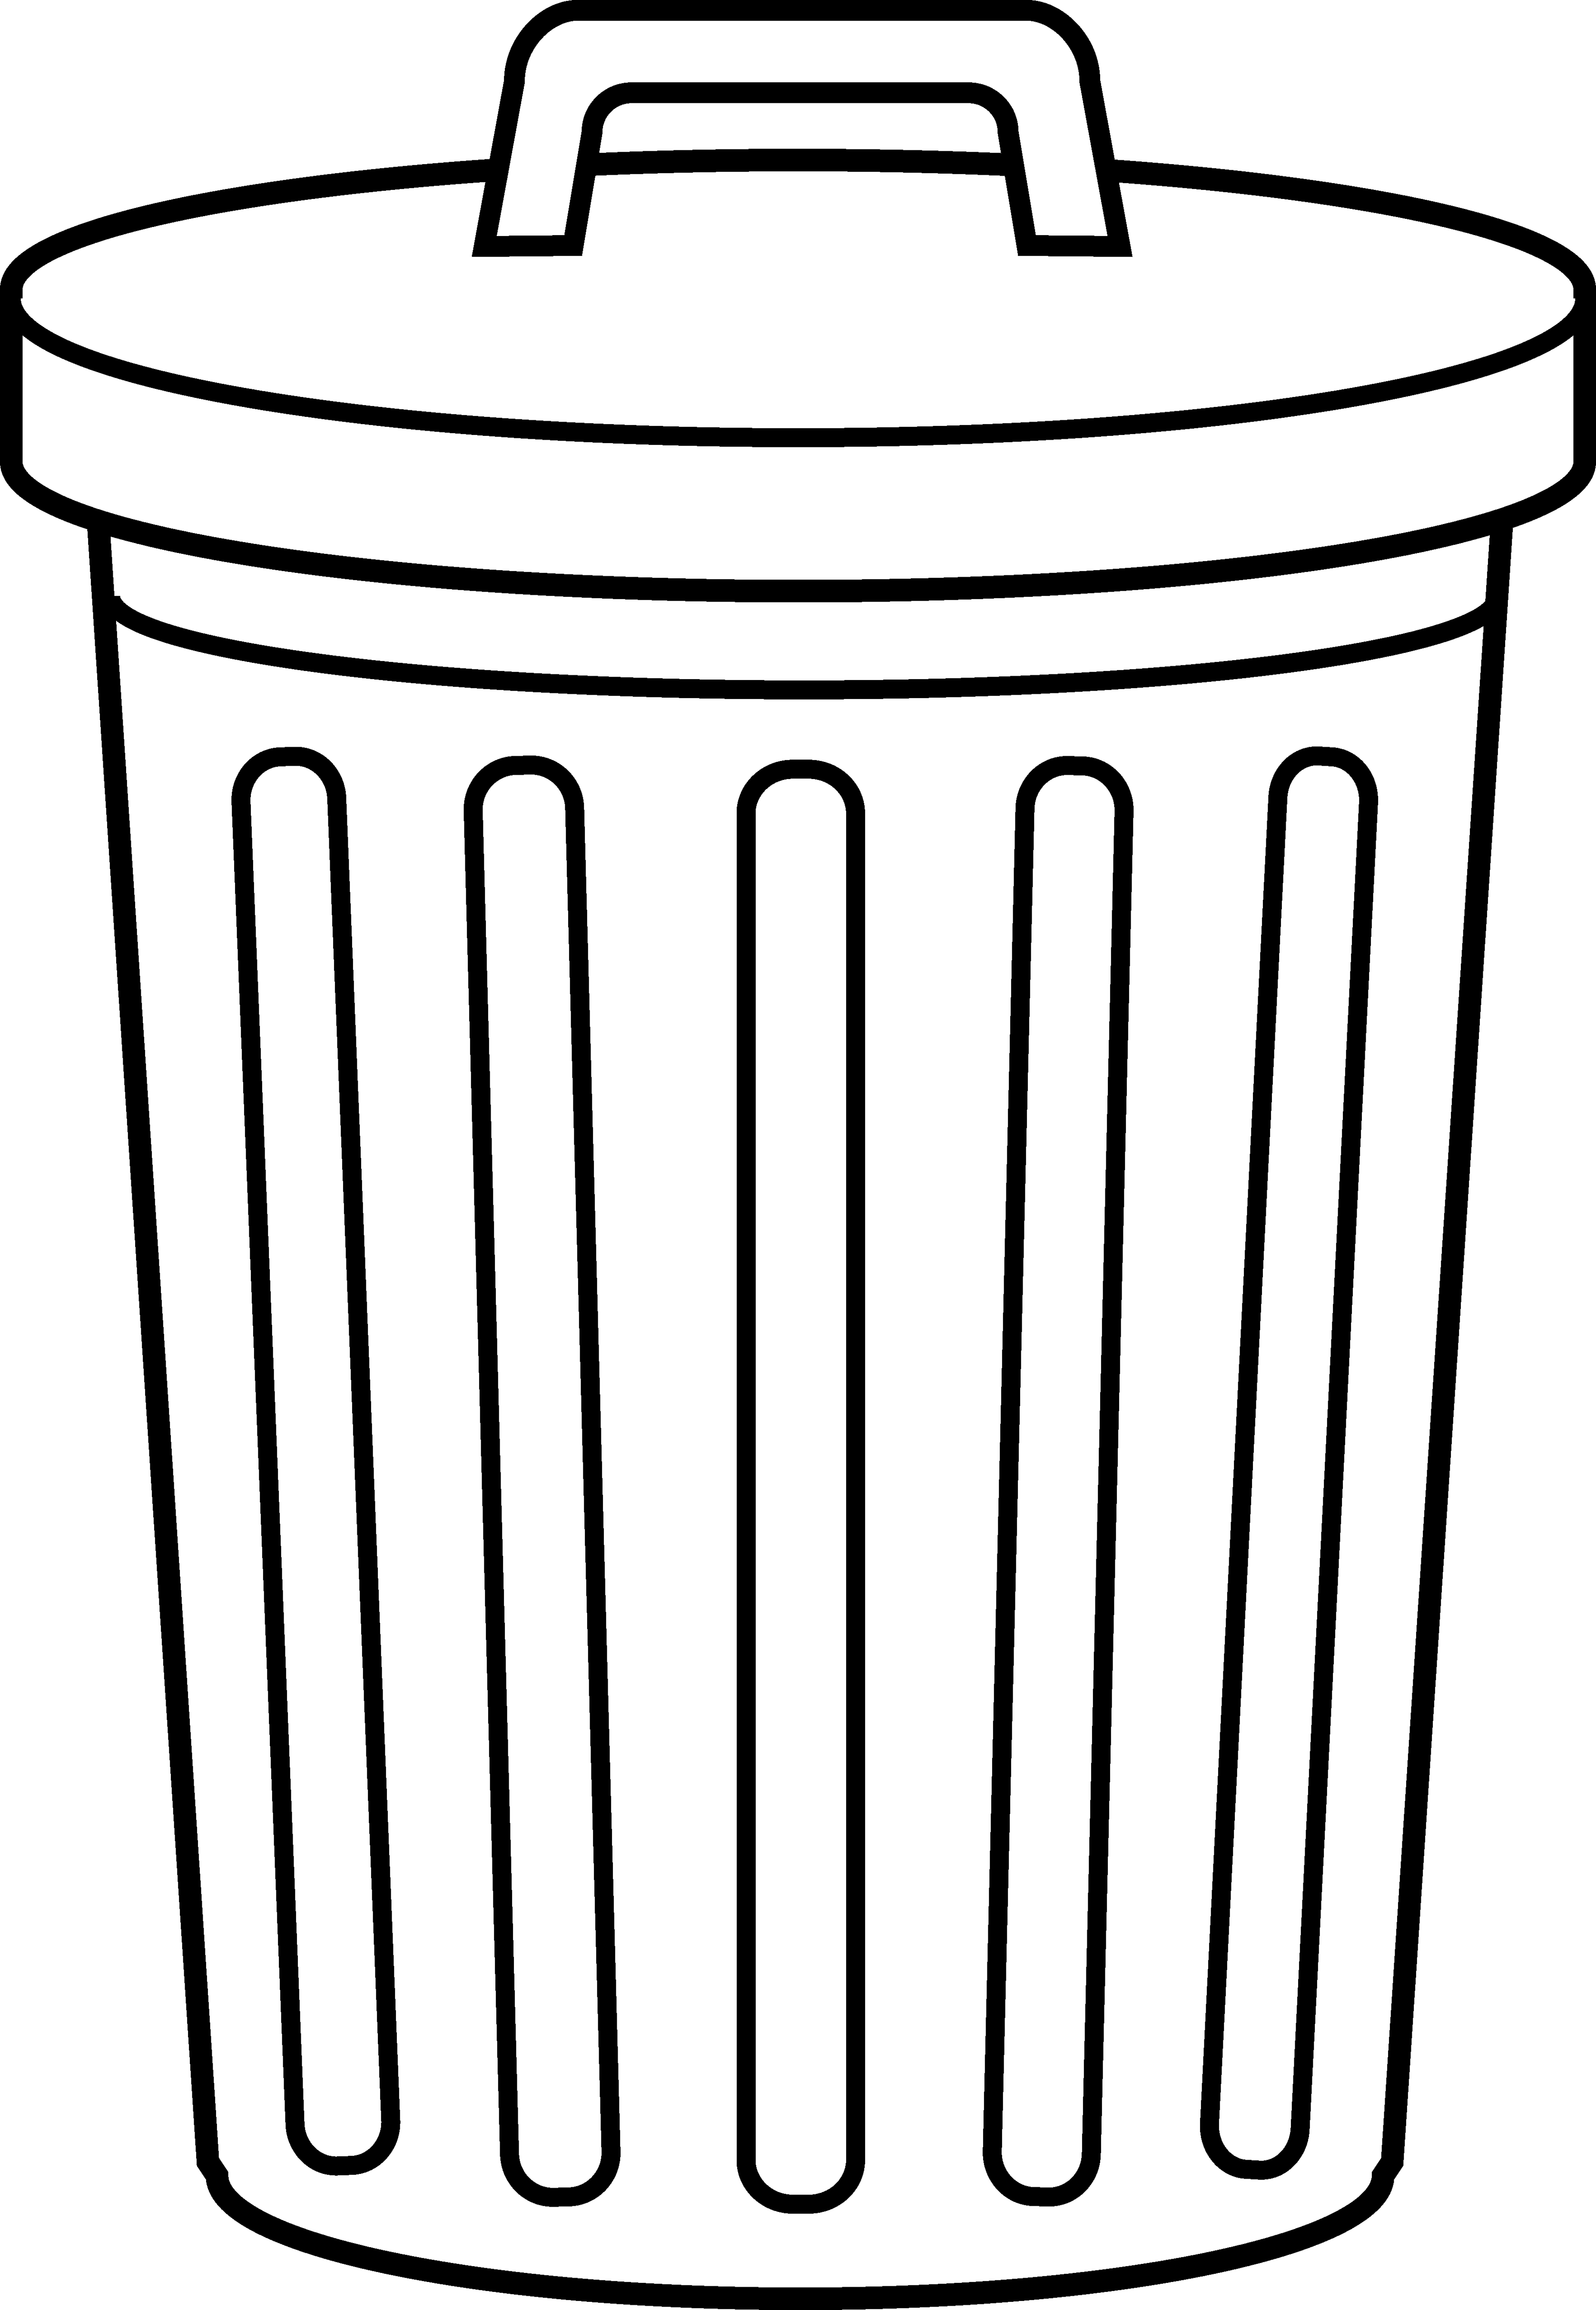 Trashcan basketball clipart clipart library stock 28+ Collection of Garbage Can Clipart | High quality, free cliparts ... clipart library stock